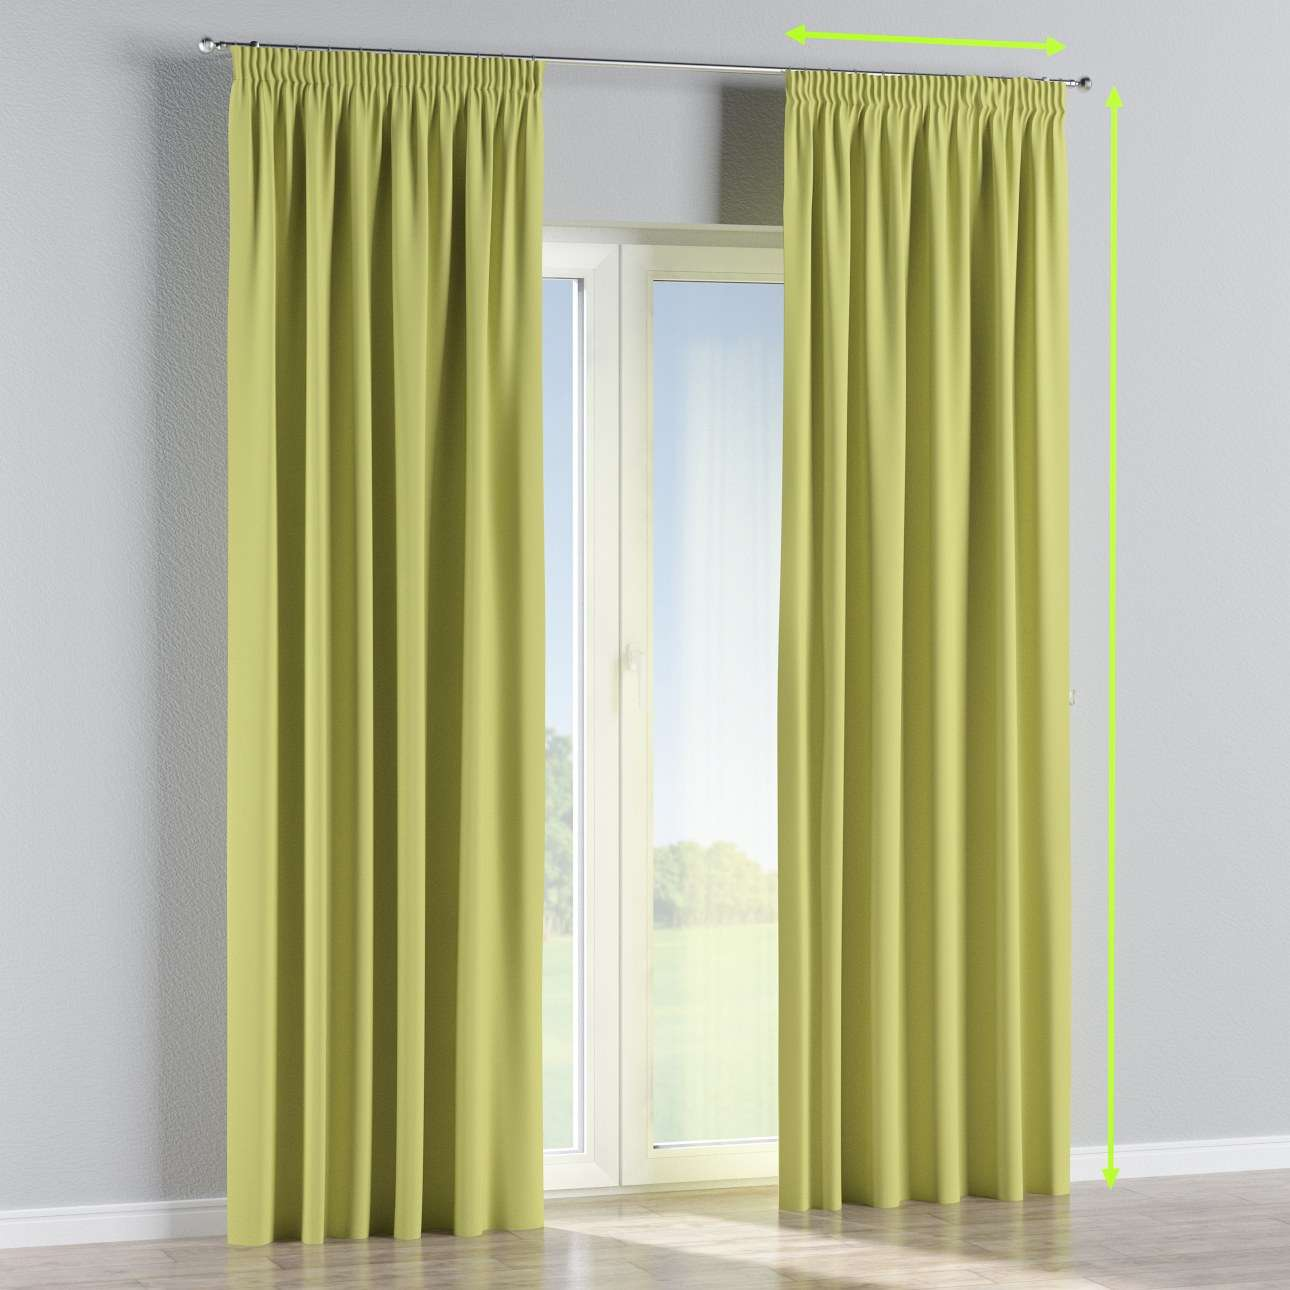 Pencil pleat curtains in collection Blackout, fabric: 269-17